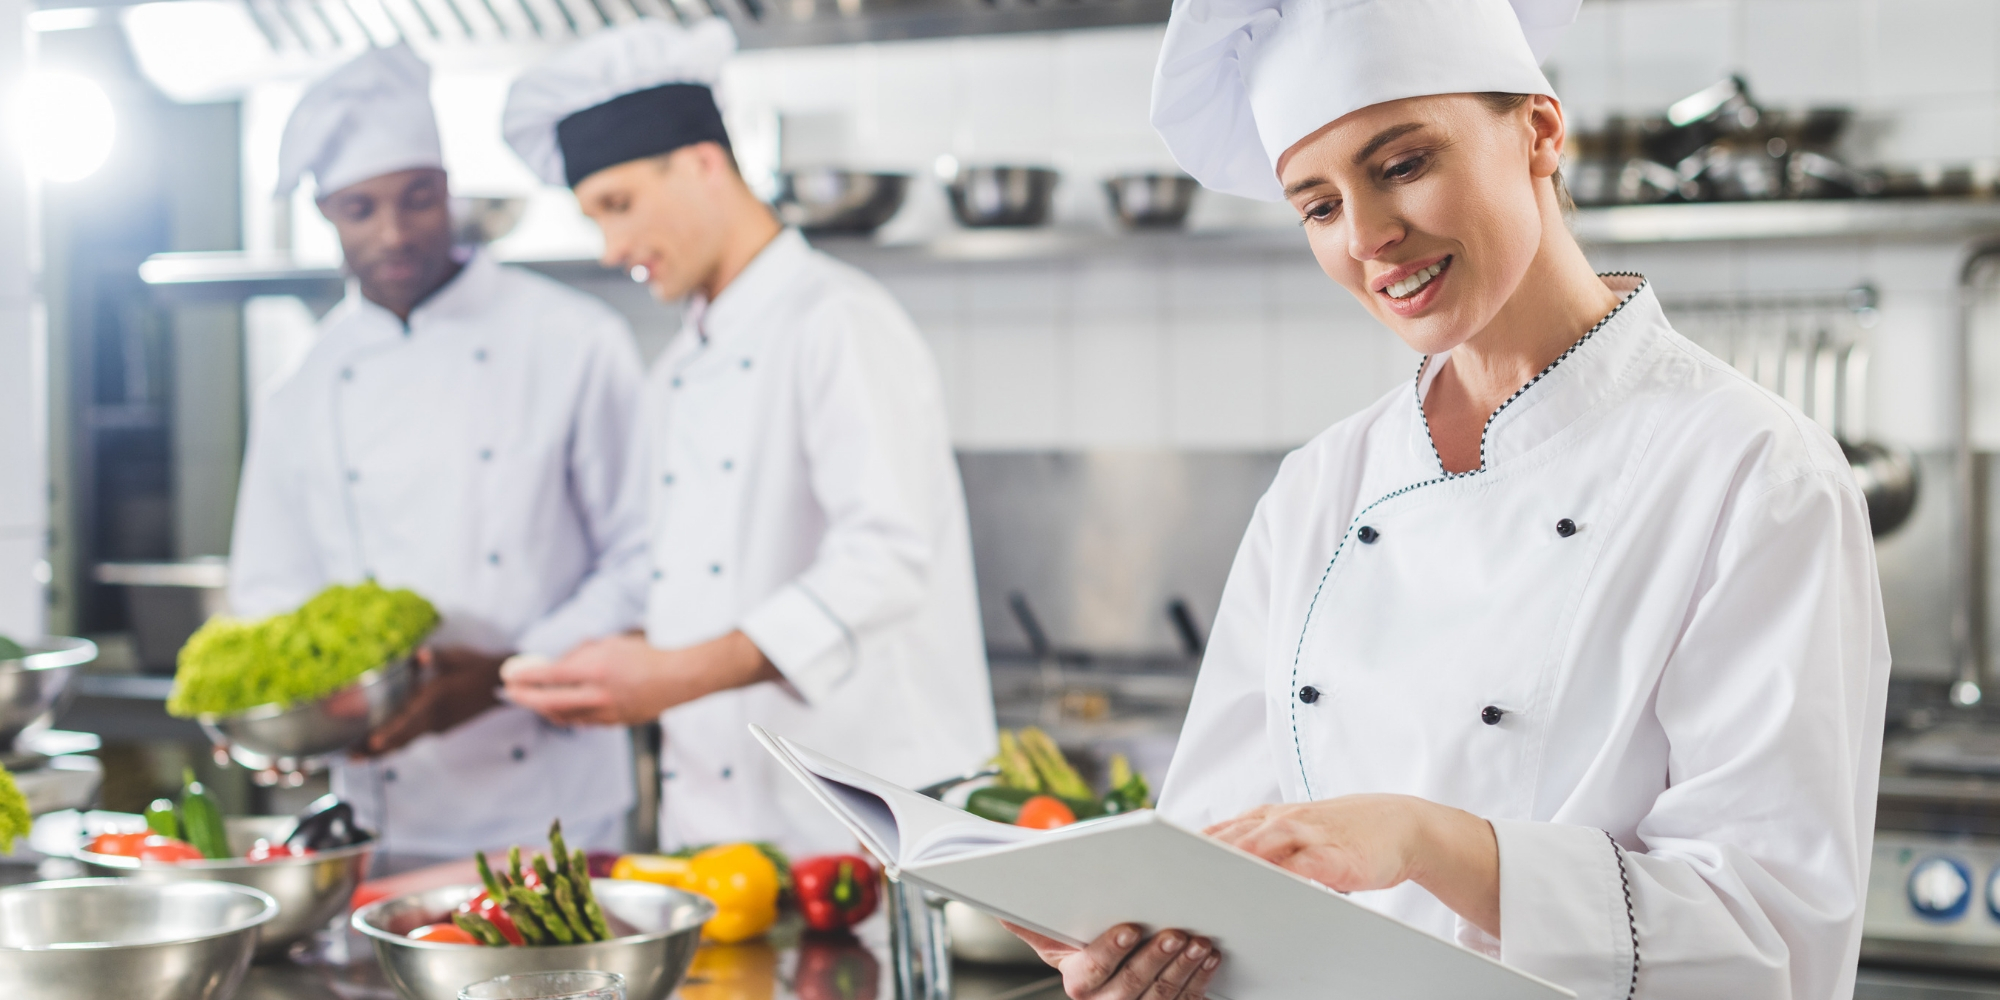 Chef jobs in Germany and The Netherlands